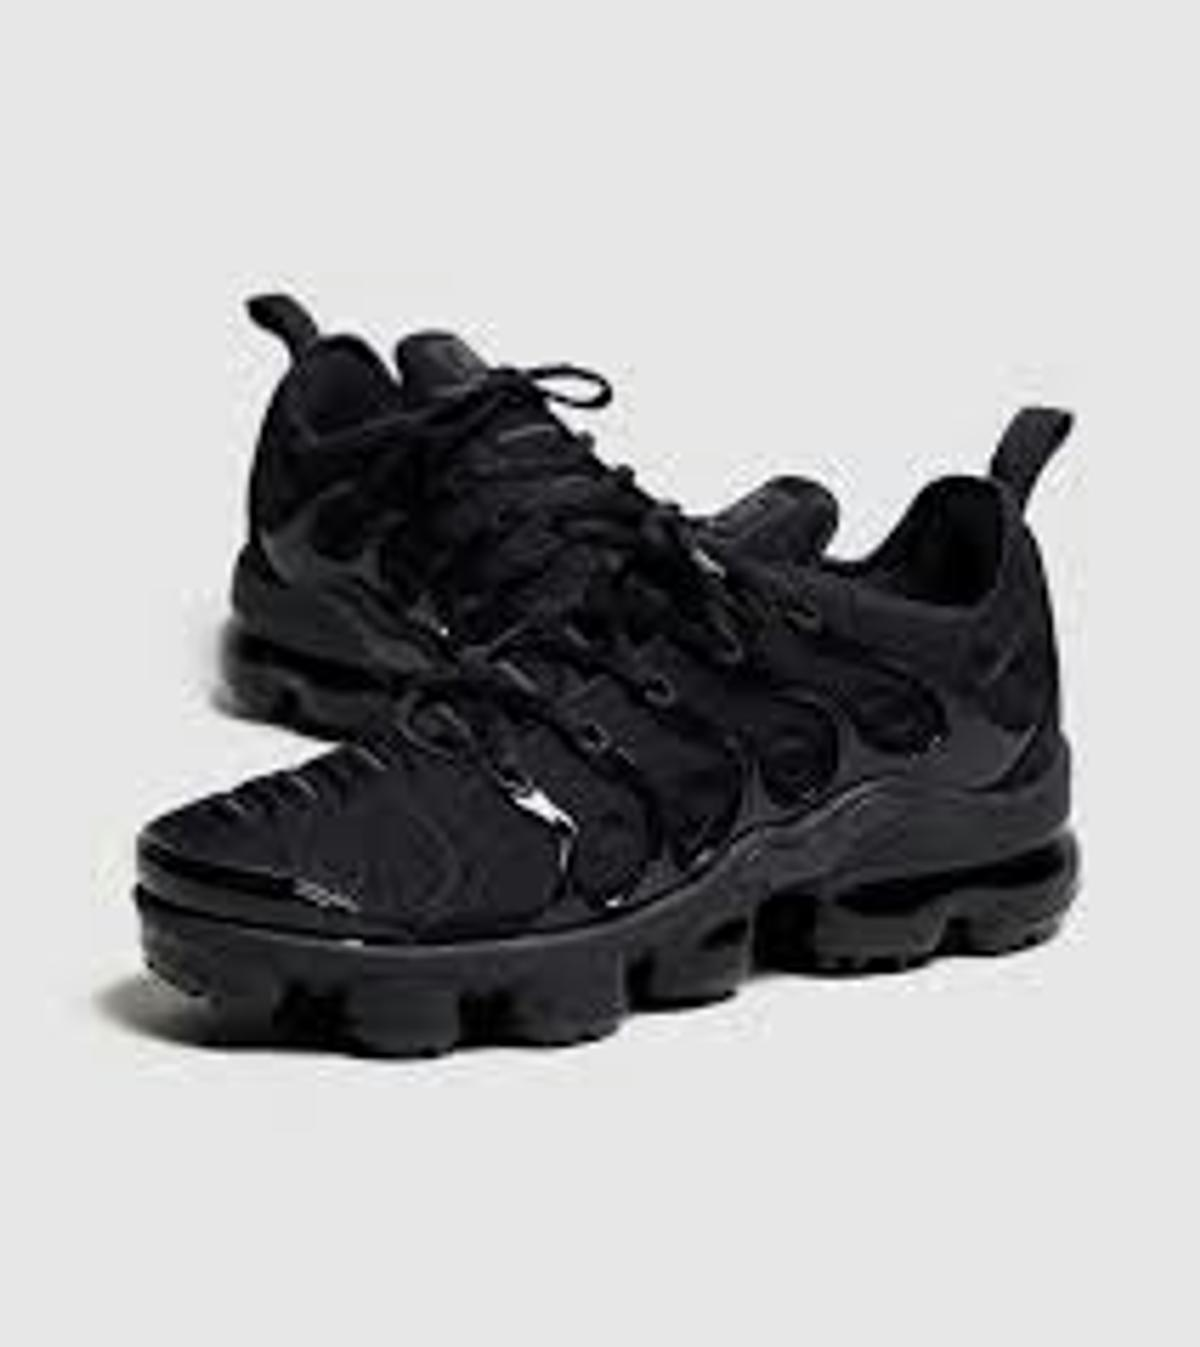 finest selection 0a58e 4aef8 NEW NIKE AIR VAPORMAX PLUS TRAINERS SIZE 8.5 in BD8 Bradford ...